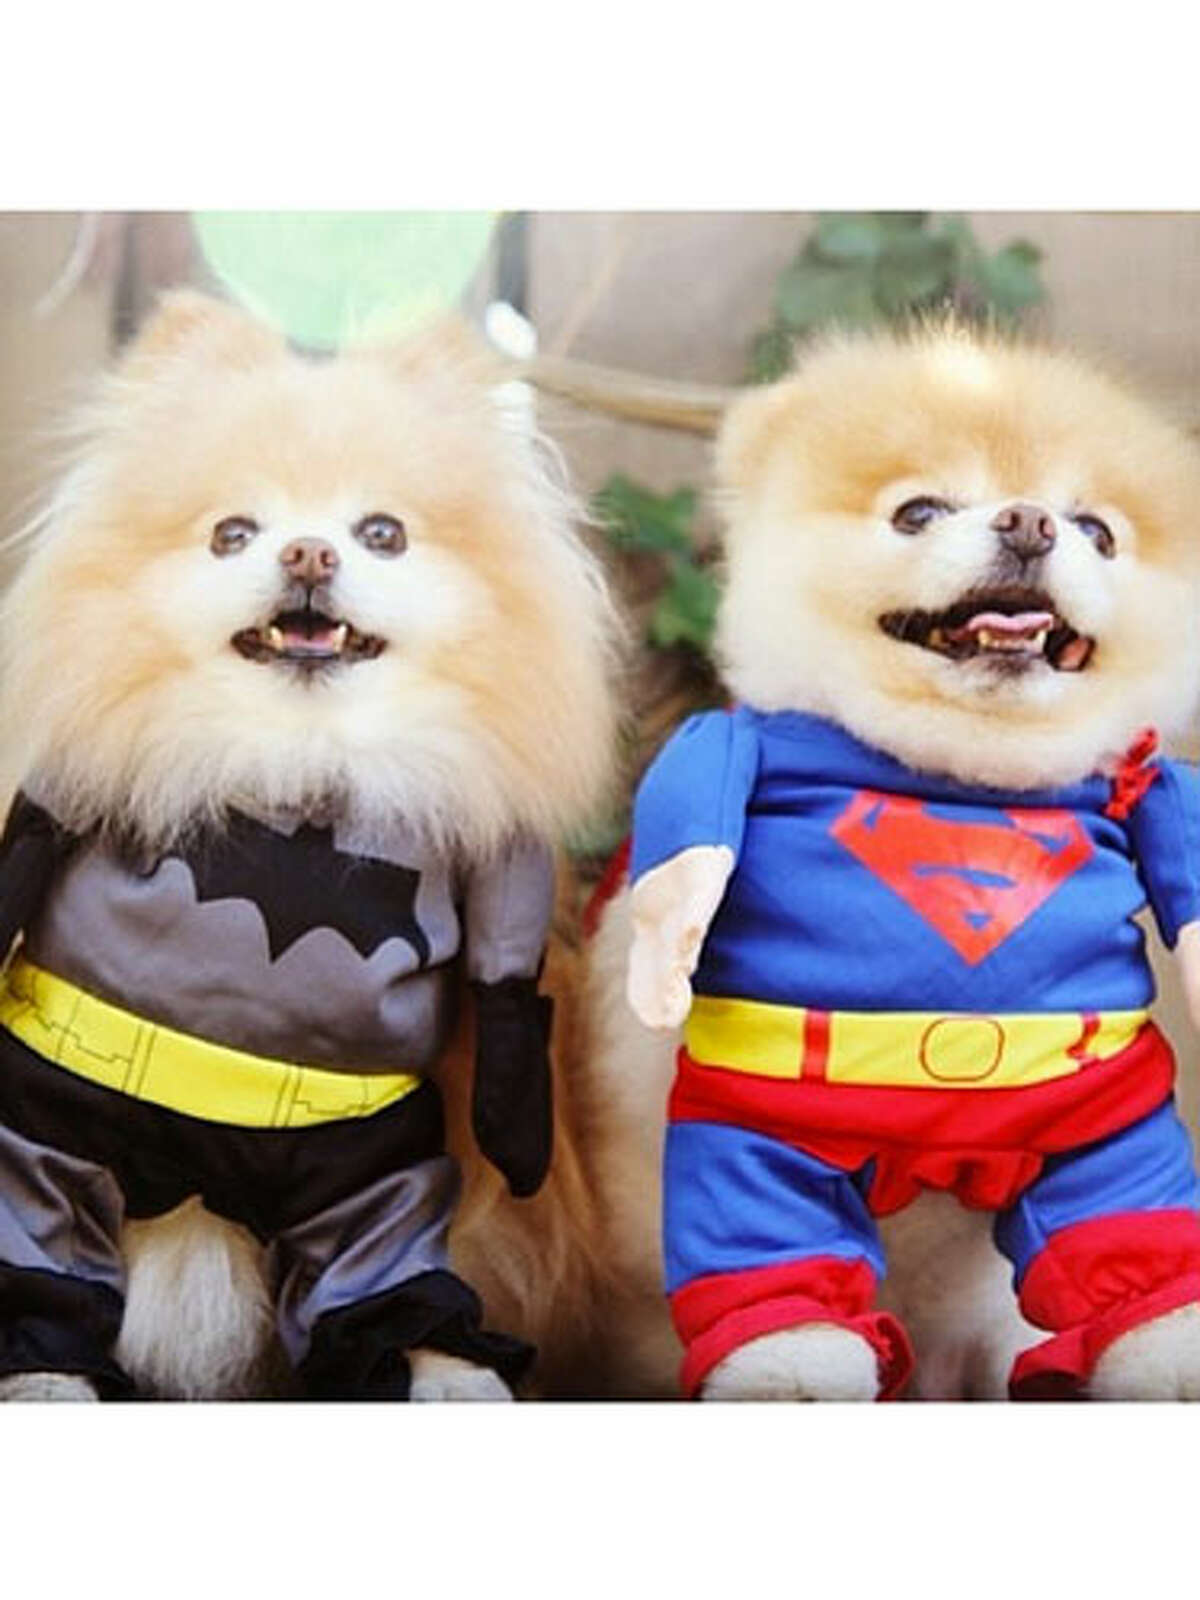 Batman characters are the third most popular pet costumes this Halloween, according to the National Retail Federation.